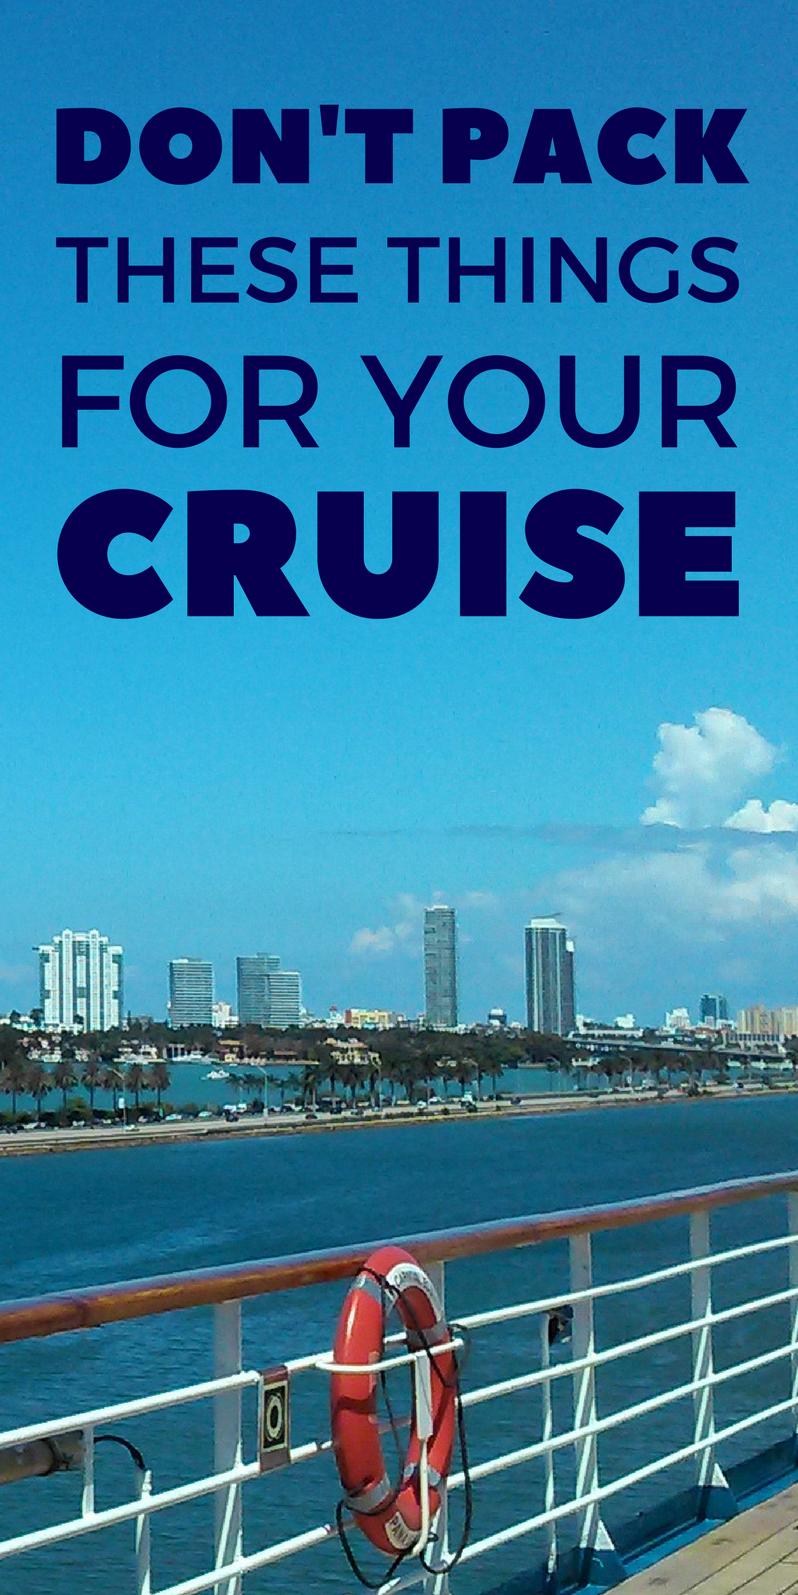 cruise packing tips as youre packing for a cruise vacation and making a checklist of what to pack and thinking about outfits and what to wear on cruise